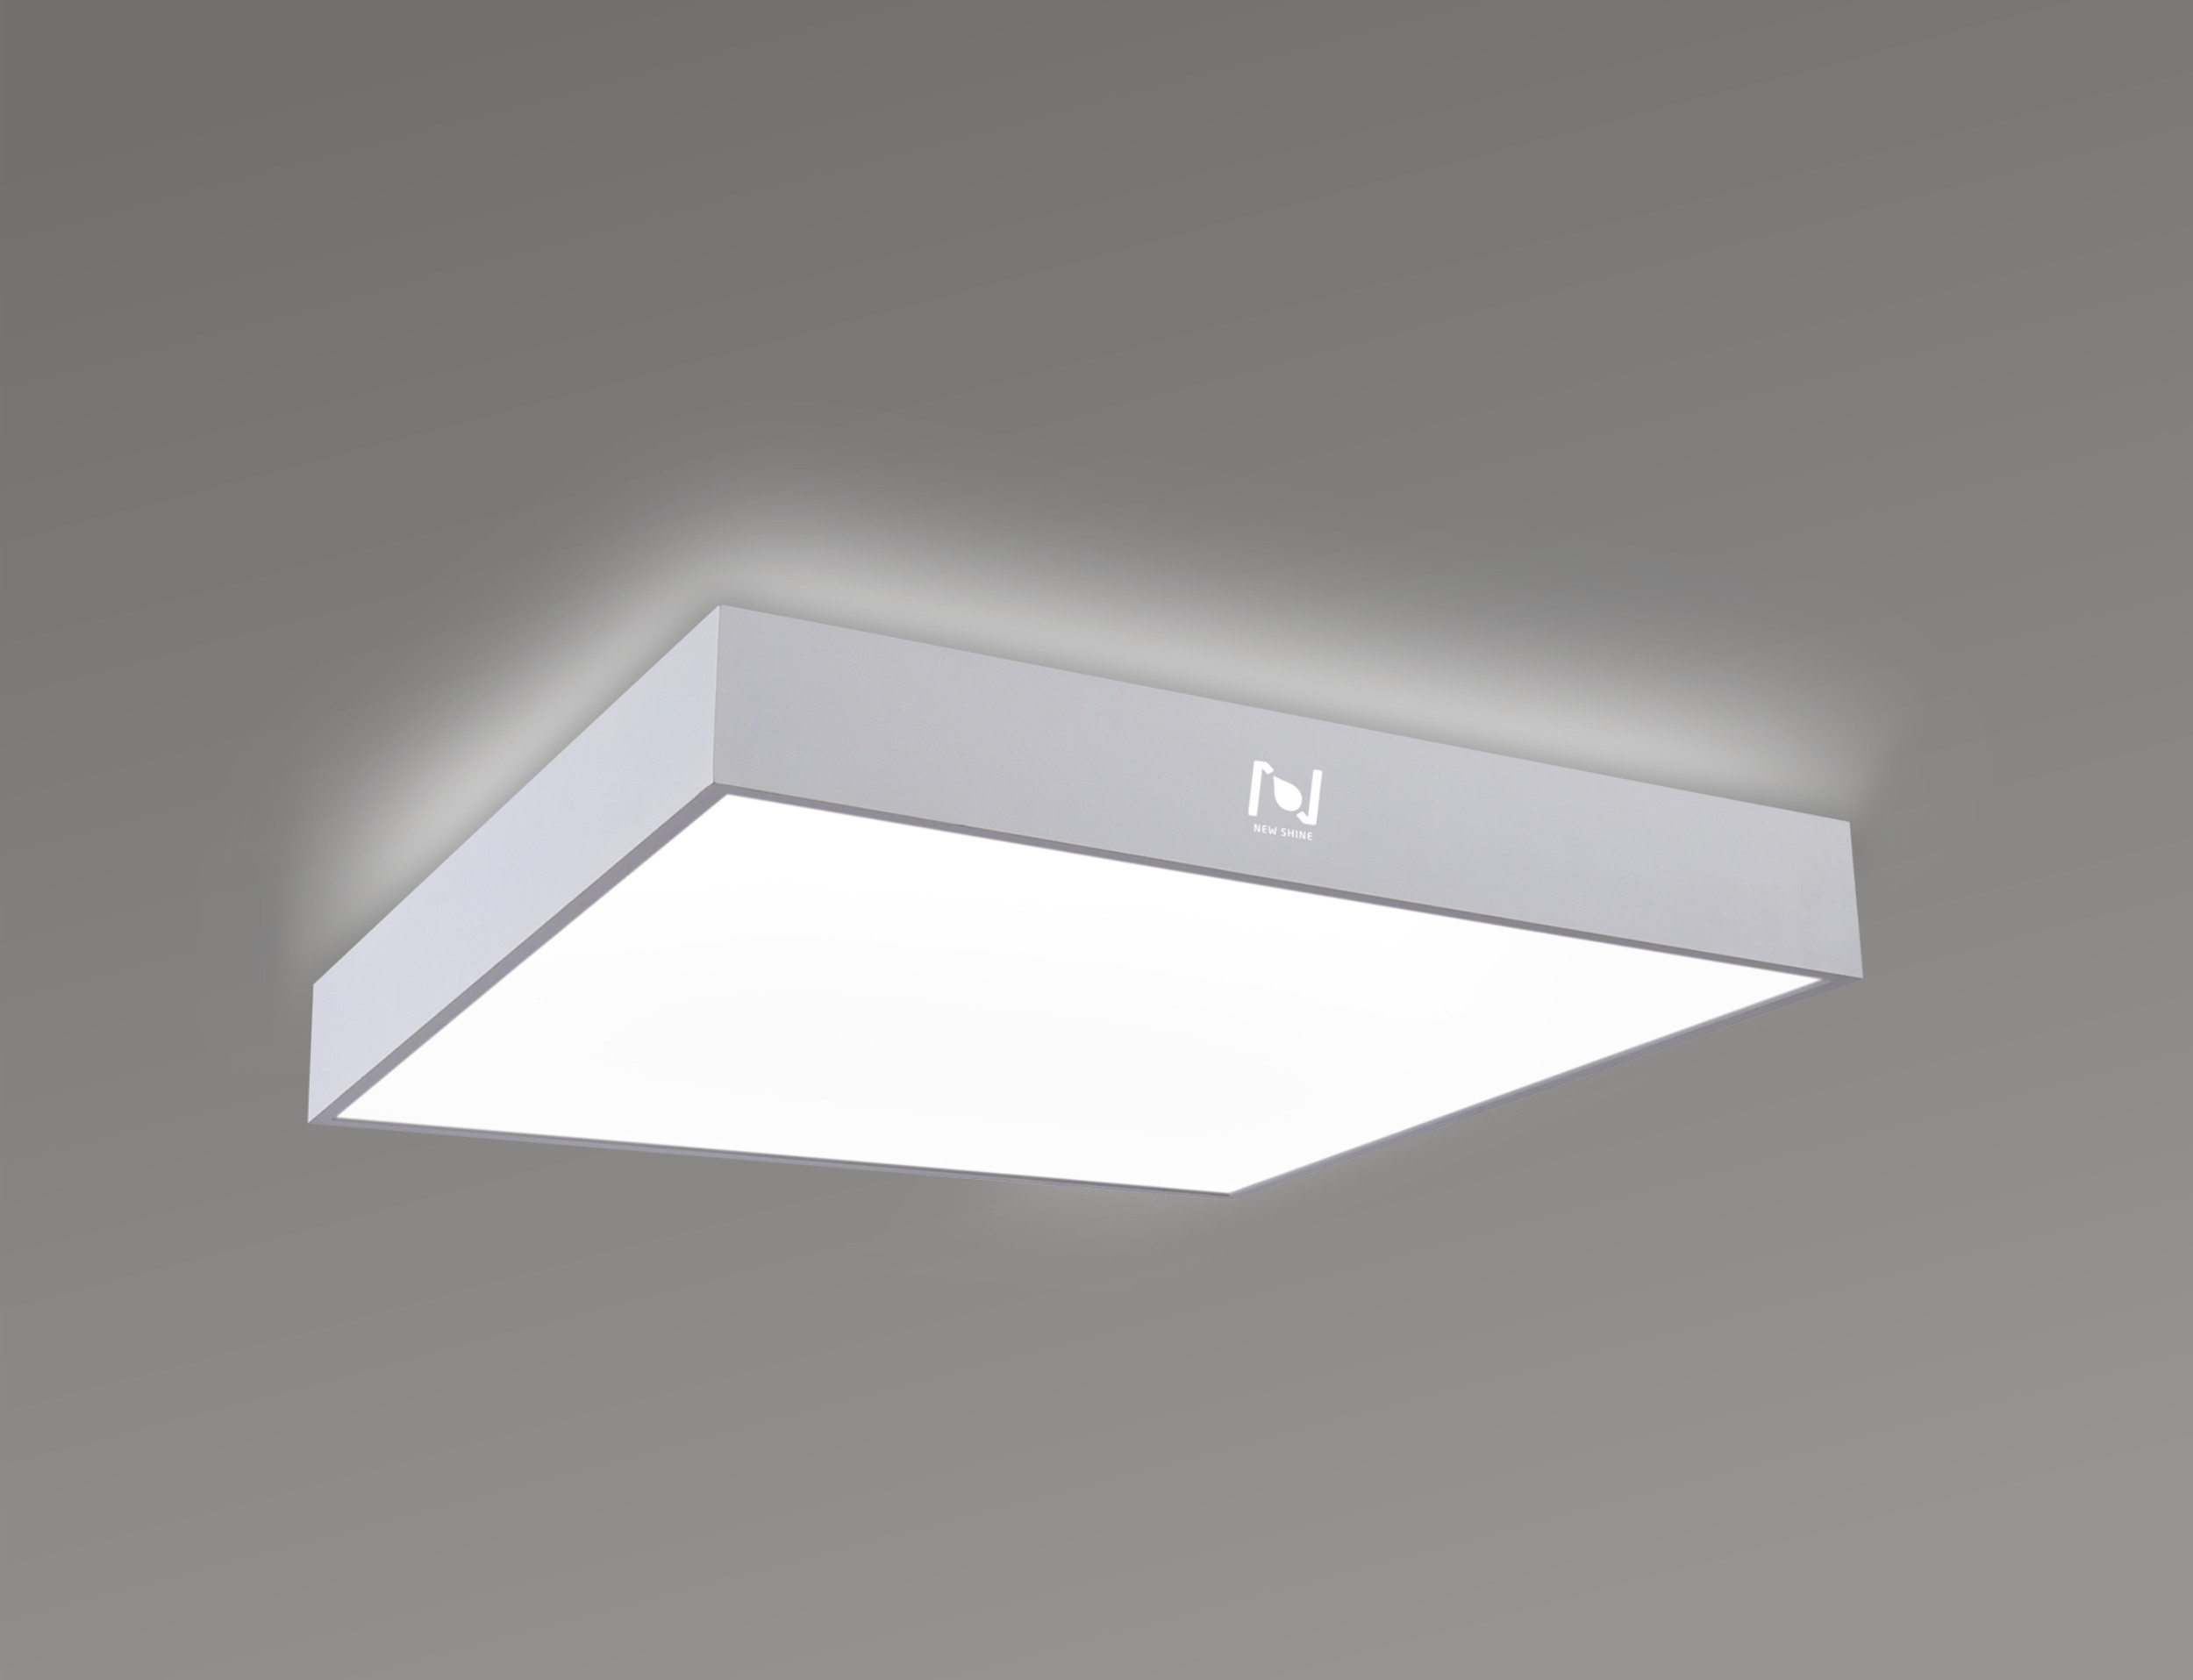 Up down square panel light  commercial lighting  LL0185UDM-80W